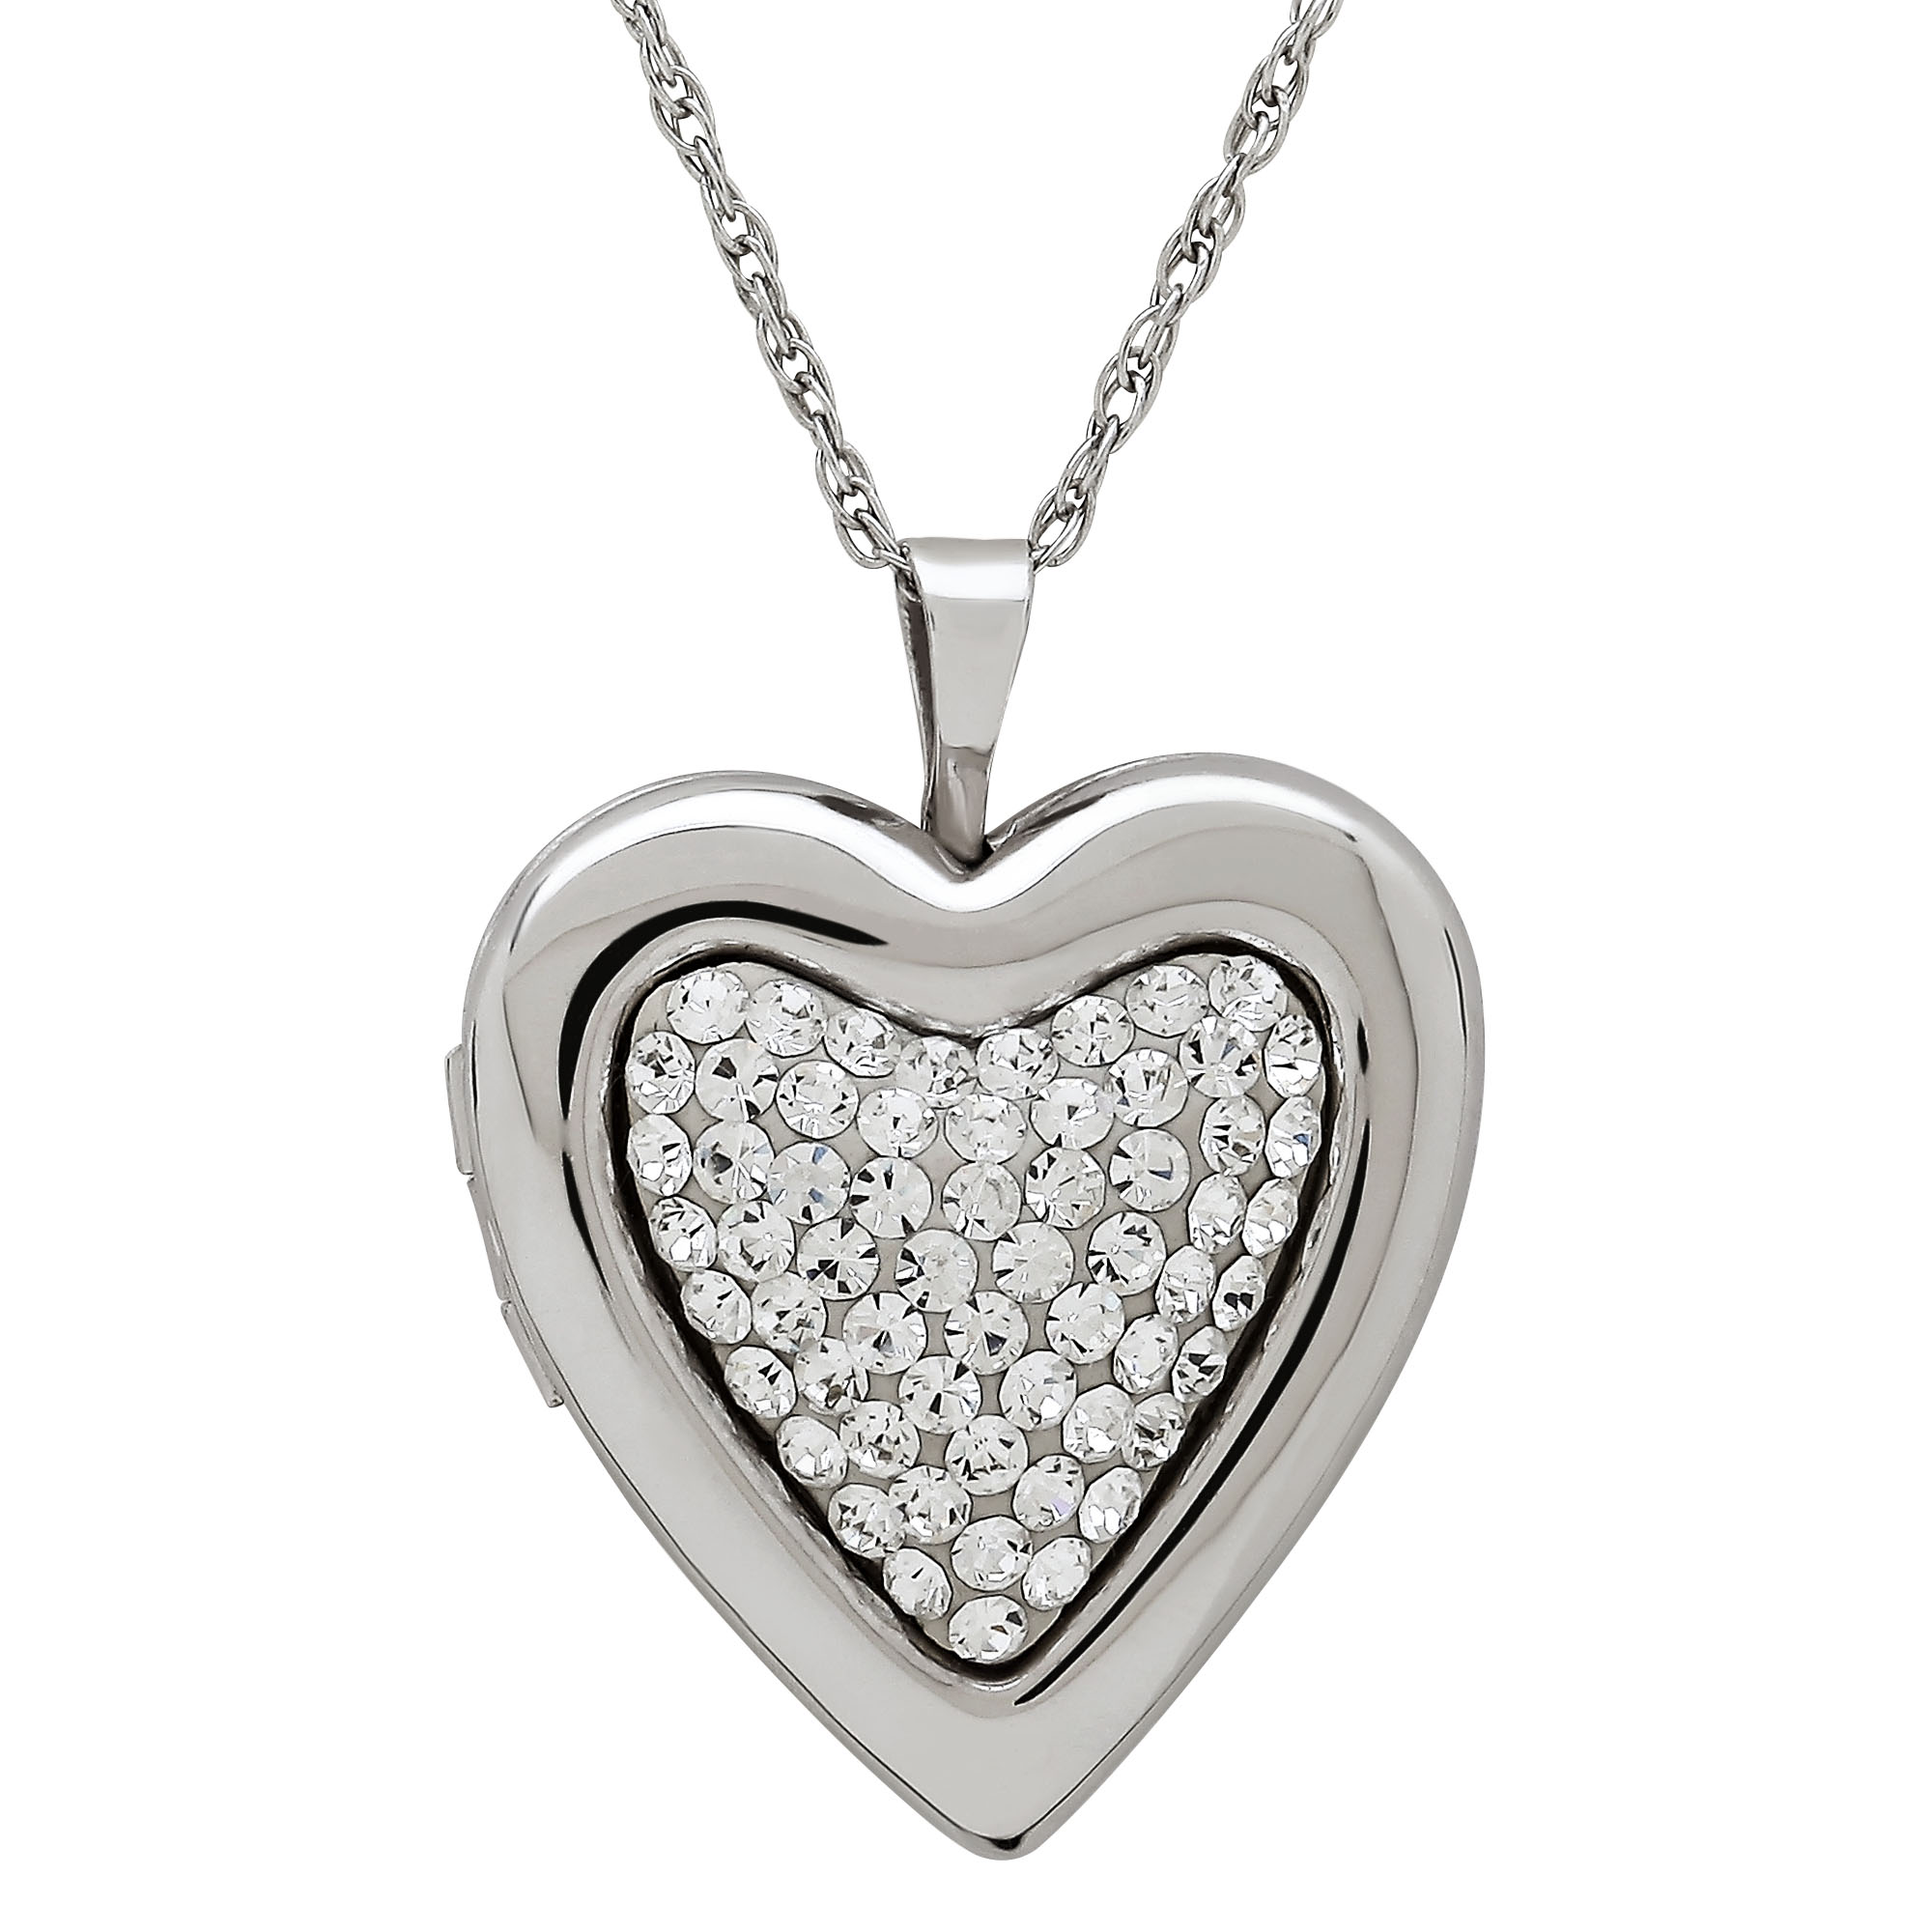 Sterling Silver Heart Locket with Clear Crystals Pendant